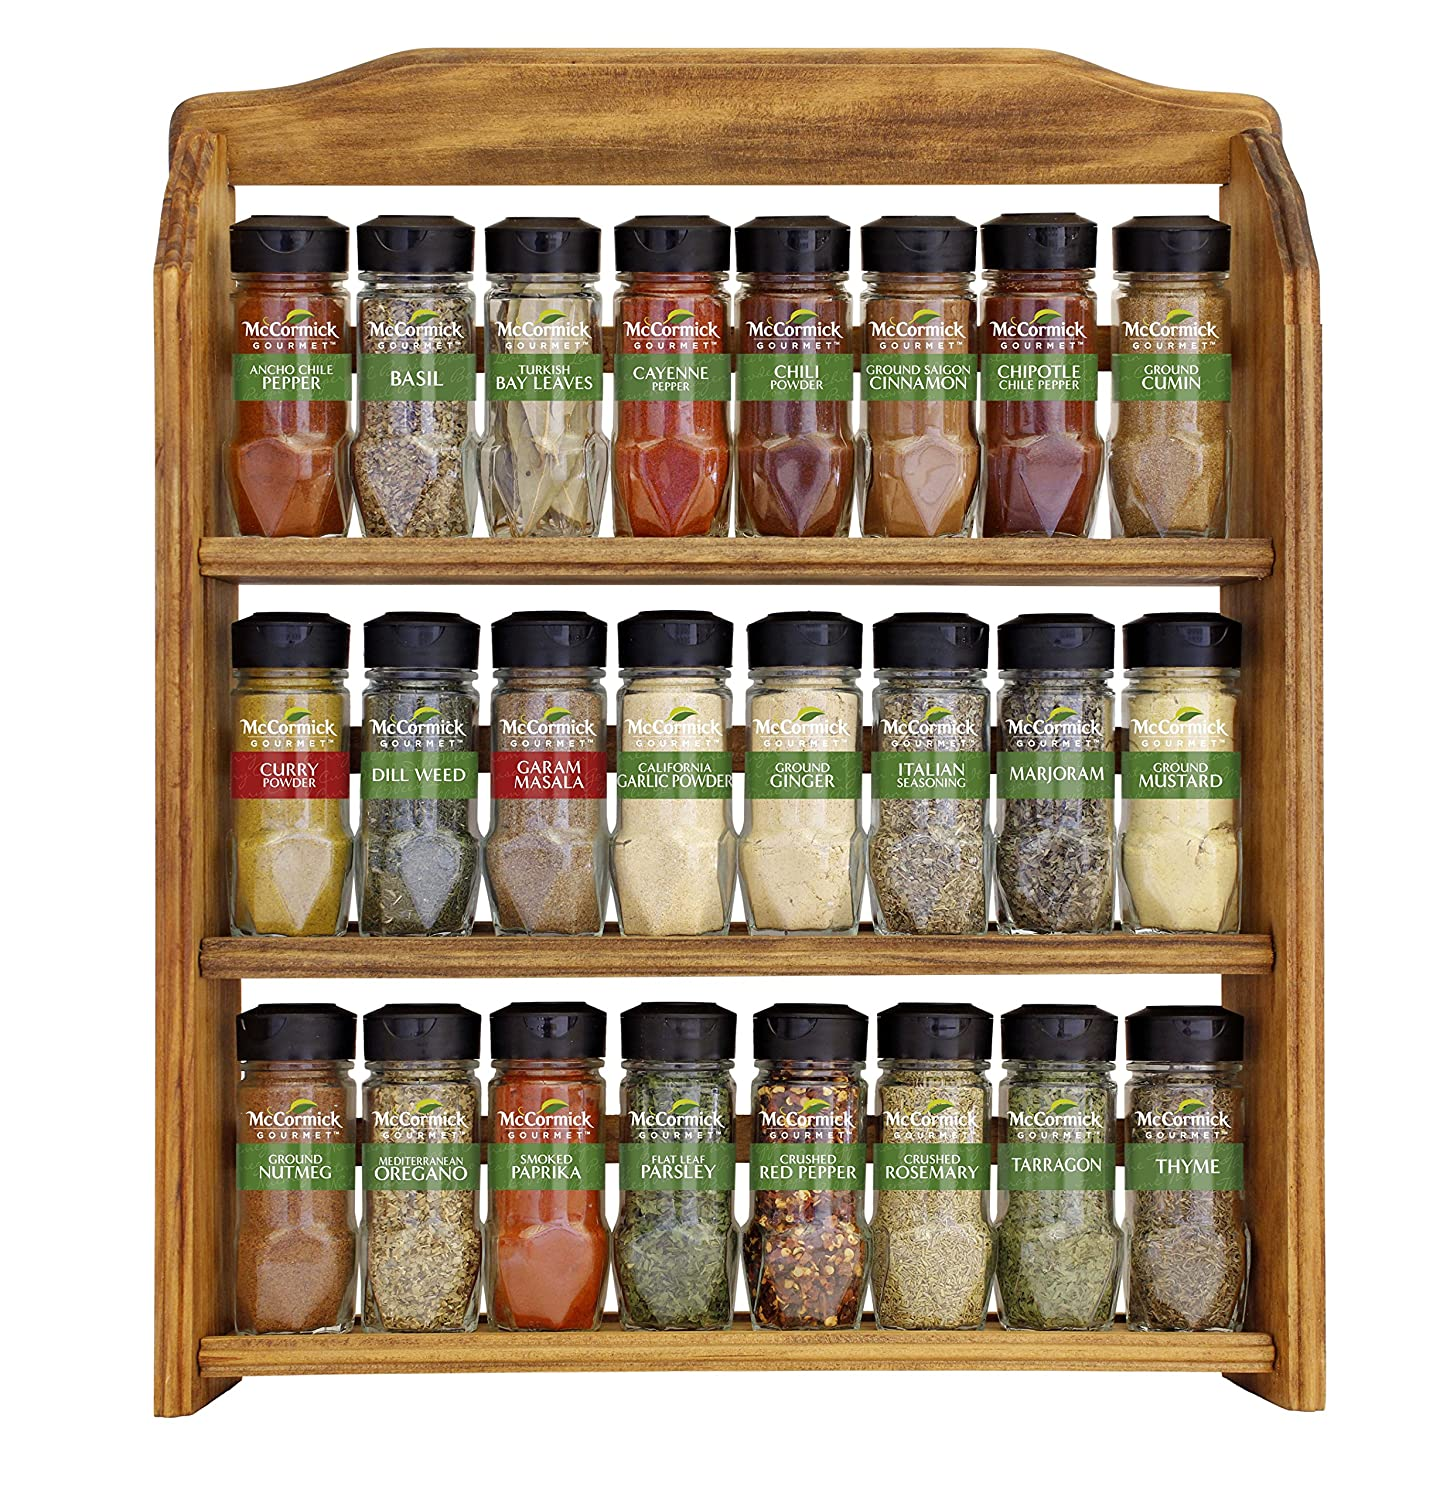 Three Tier Wood Rack 24 McCormick Gourmet Spice Count New